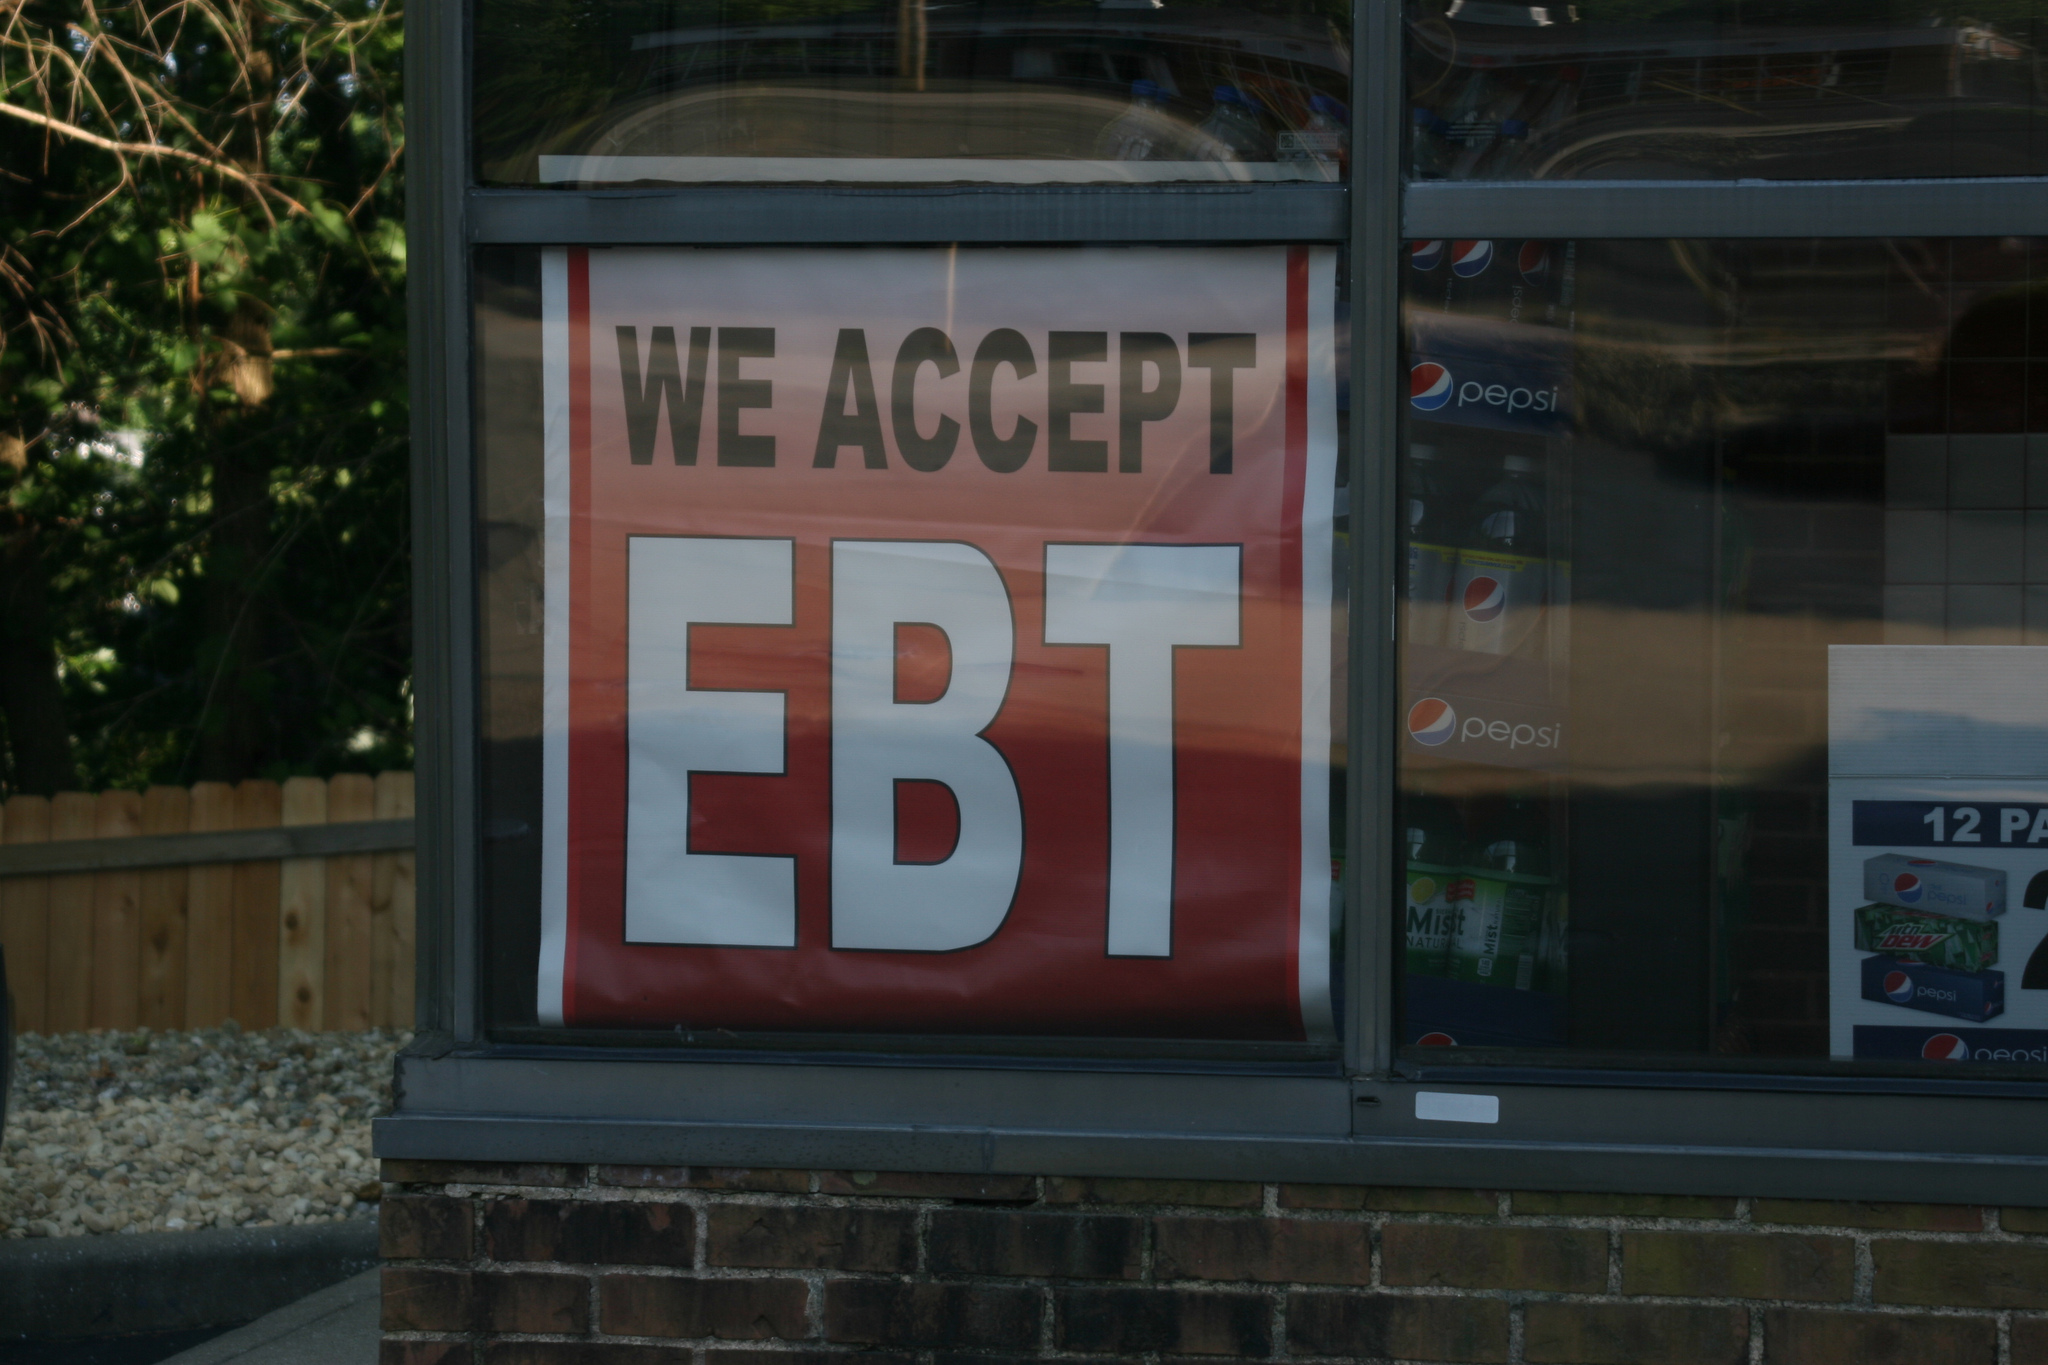 635908581683788593-9278572115-993fd7ebe0-k Our View: Instead of food stamp soda ban, do more to fight obesity